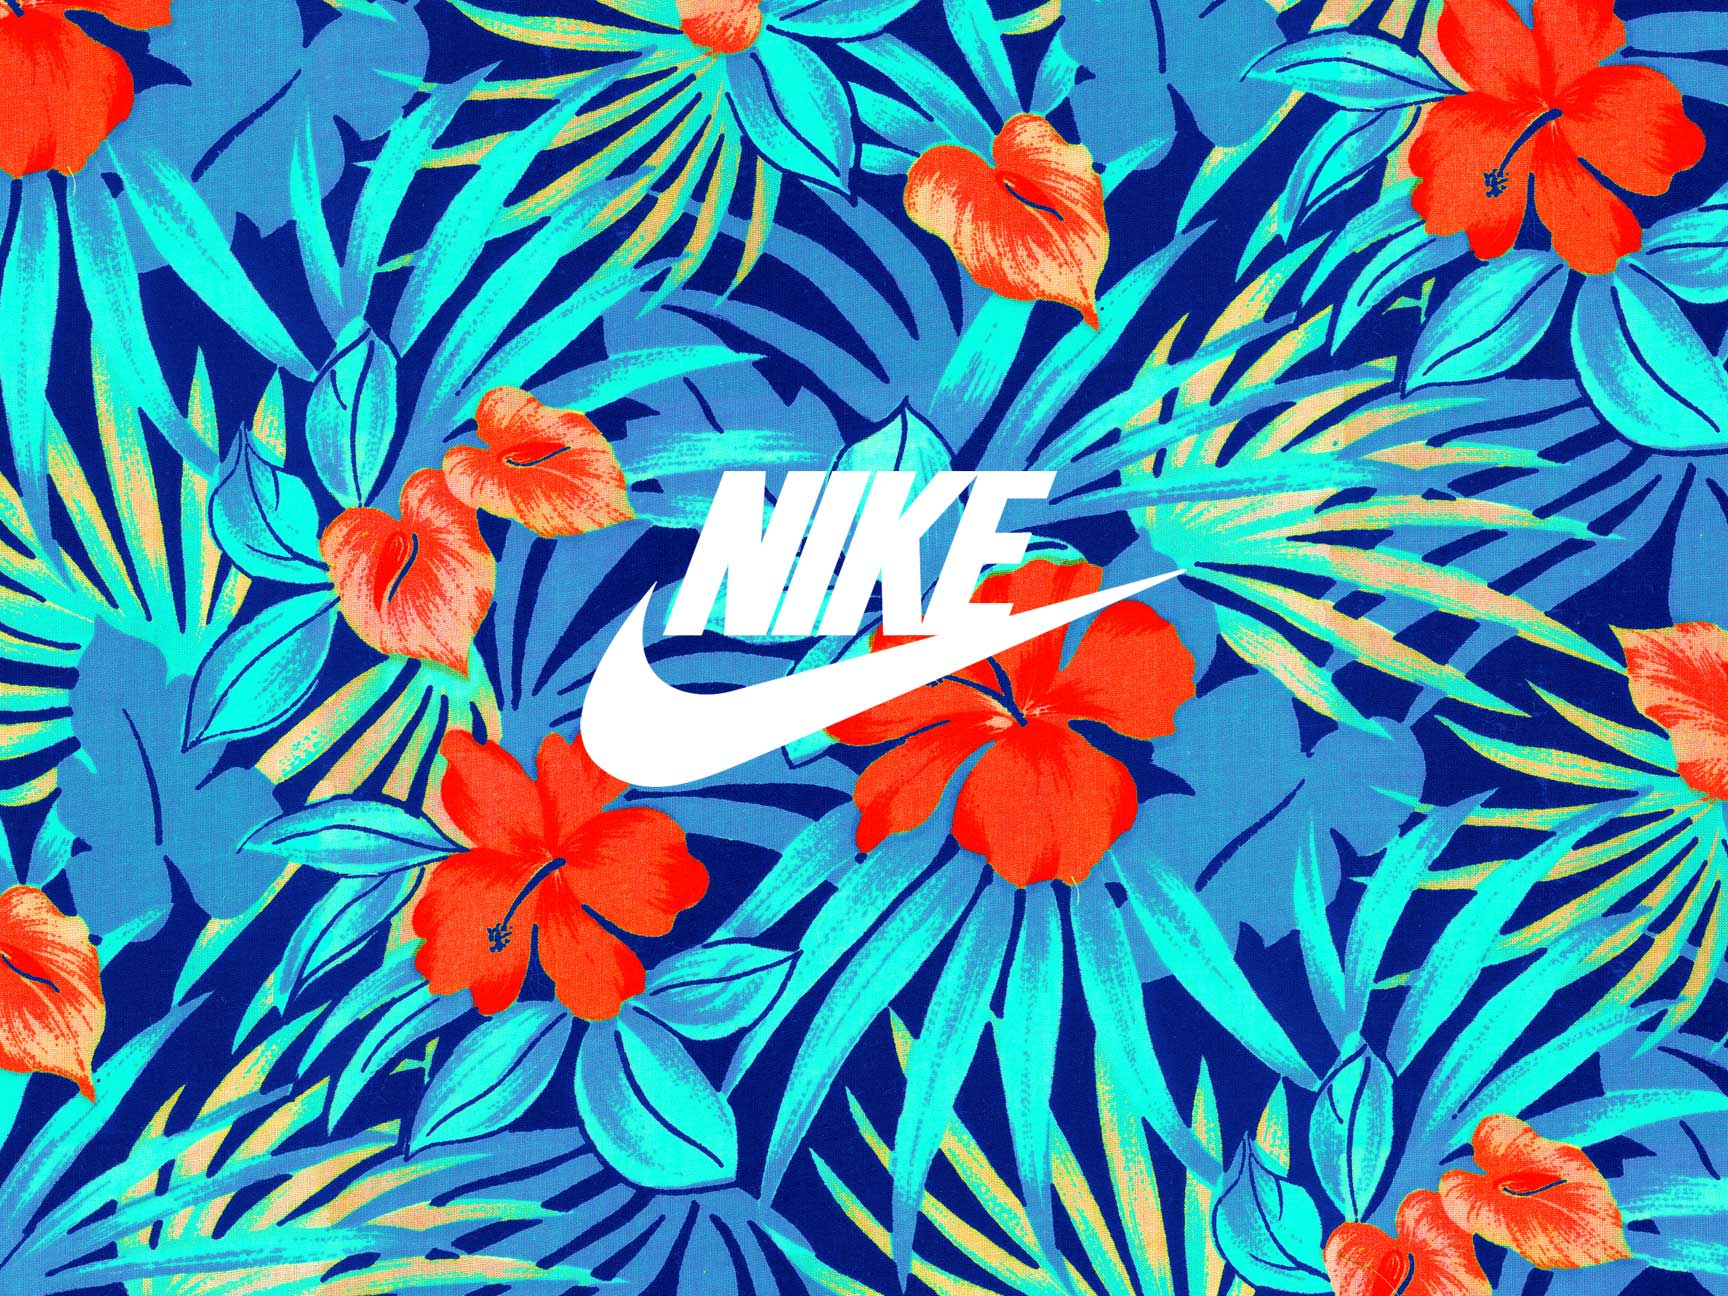 49 Nike Flower Wallpaper On Wallpapersafari